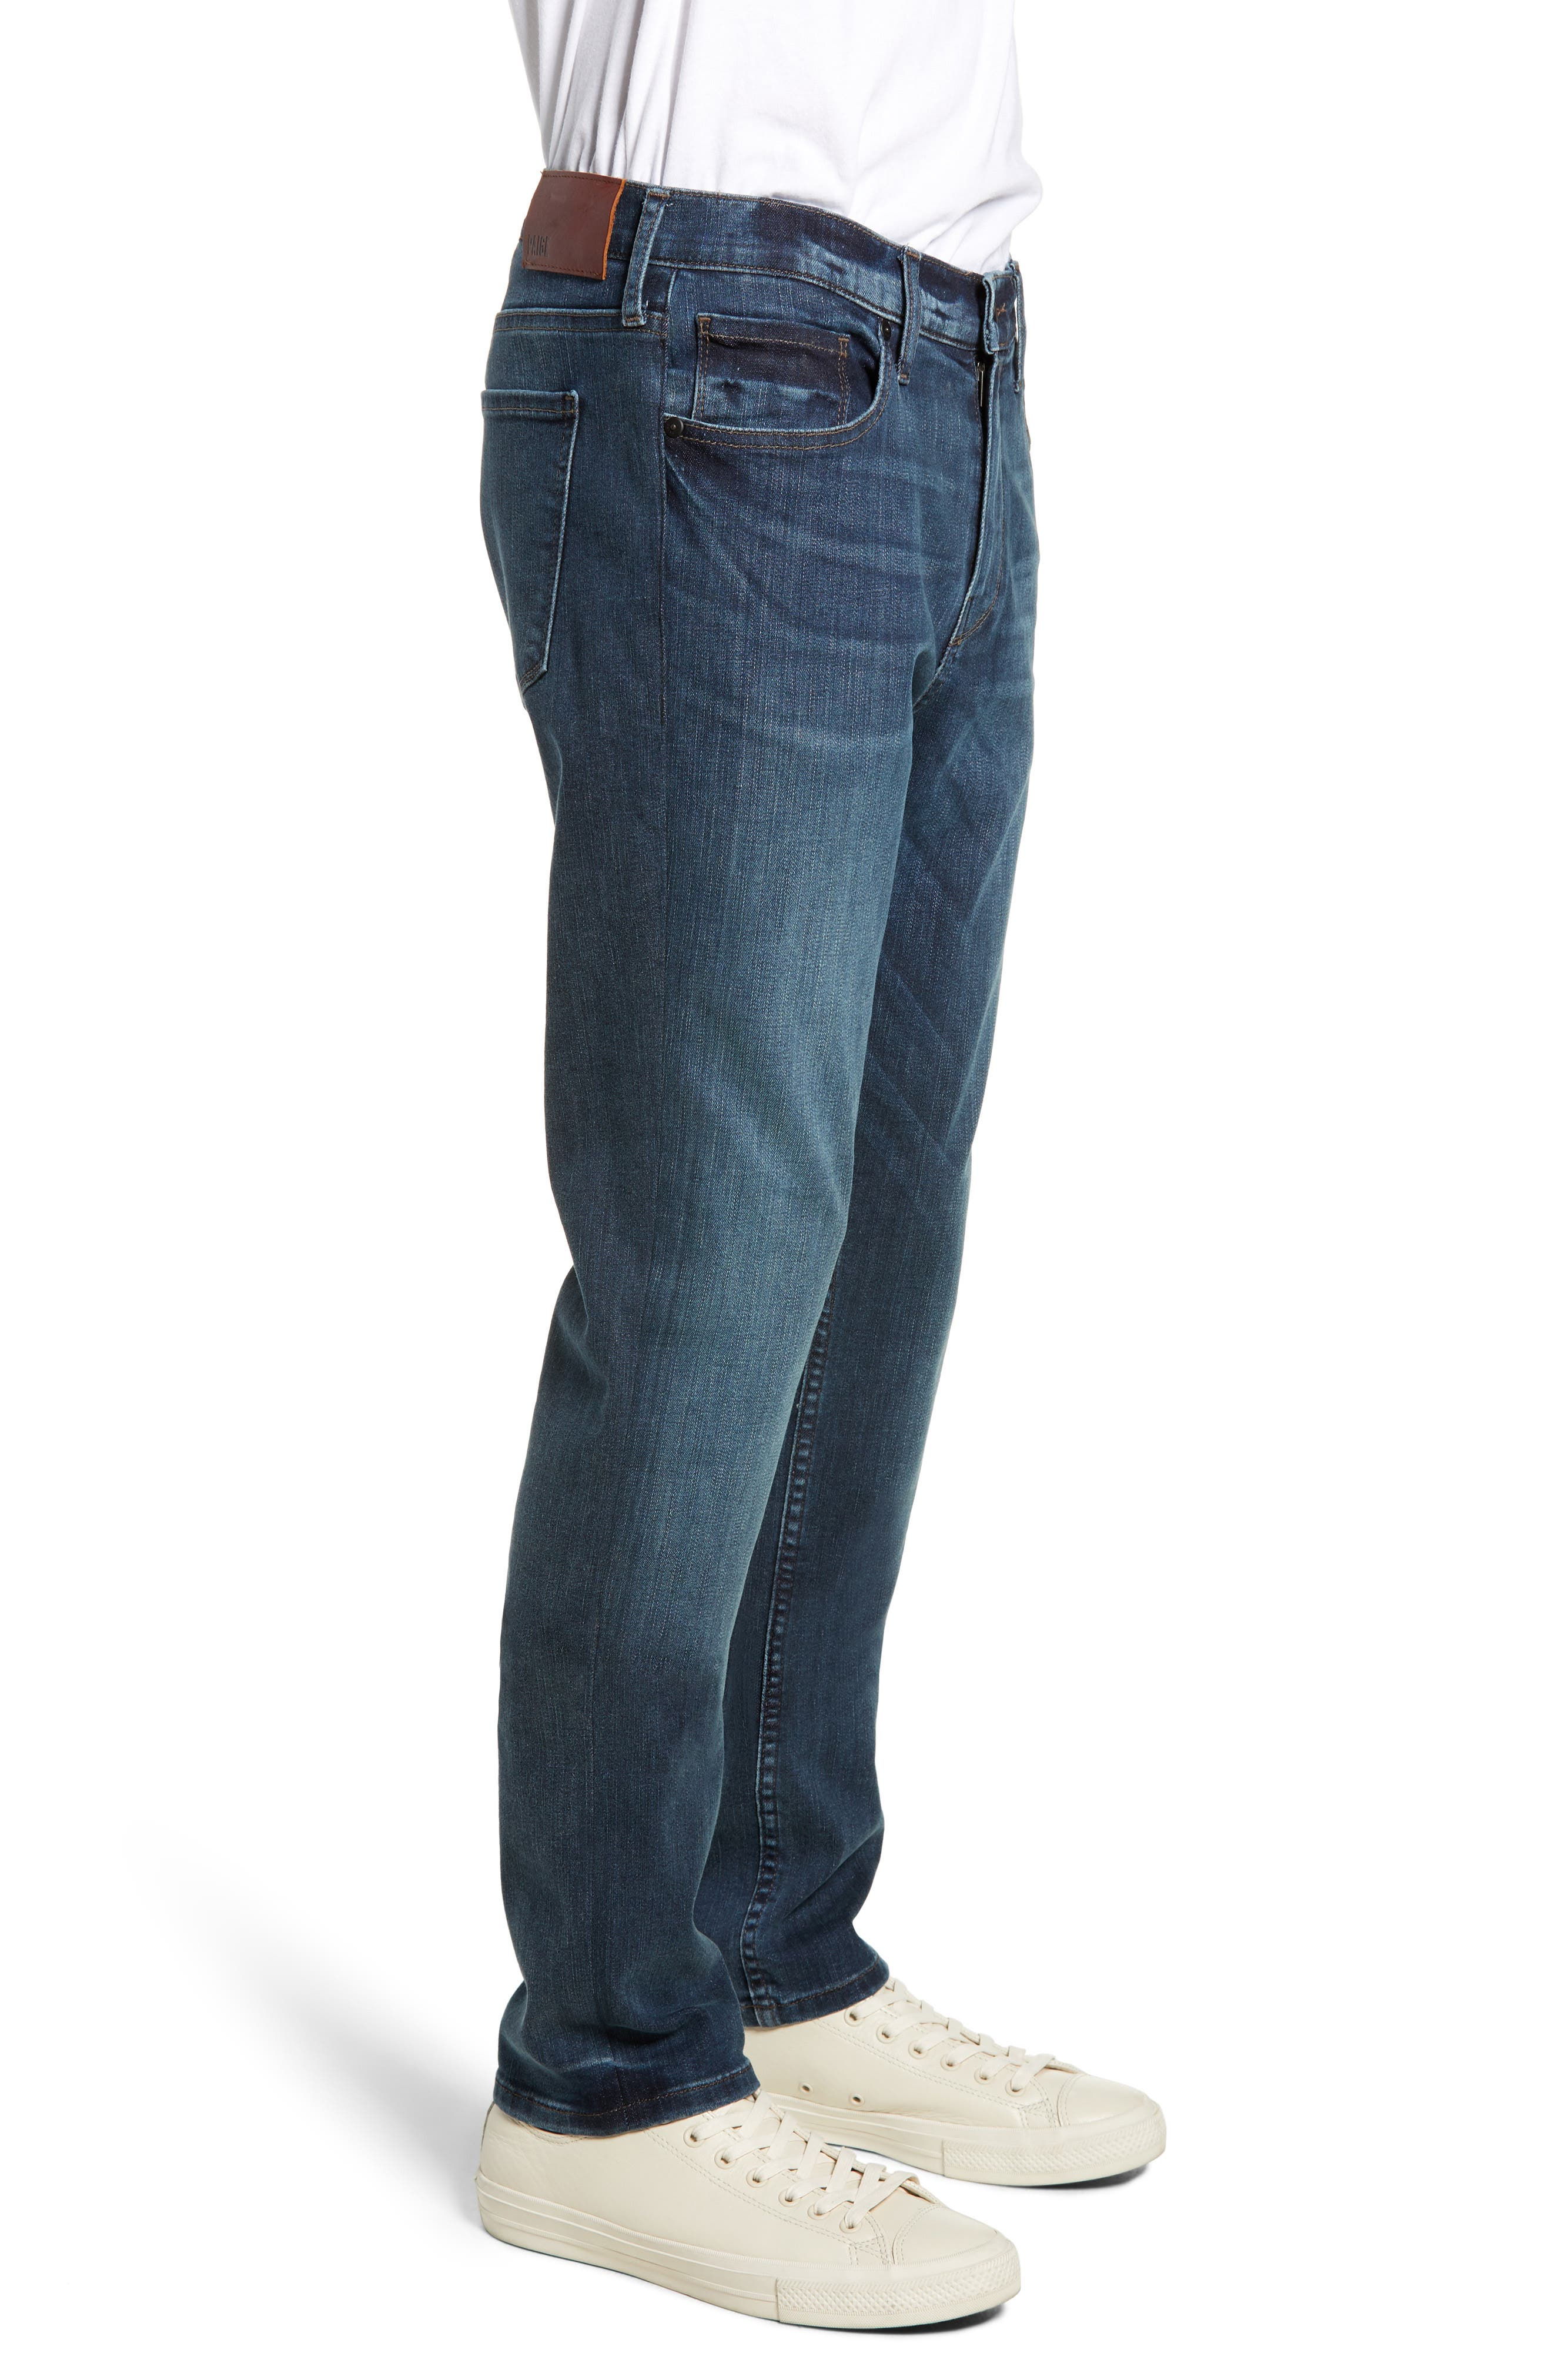 PAIGE, Transcend Vintage Federal Slim Straight Leg Jeans, Alternate thumbnail 4, color, ROARKE